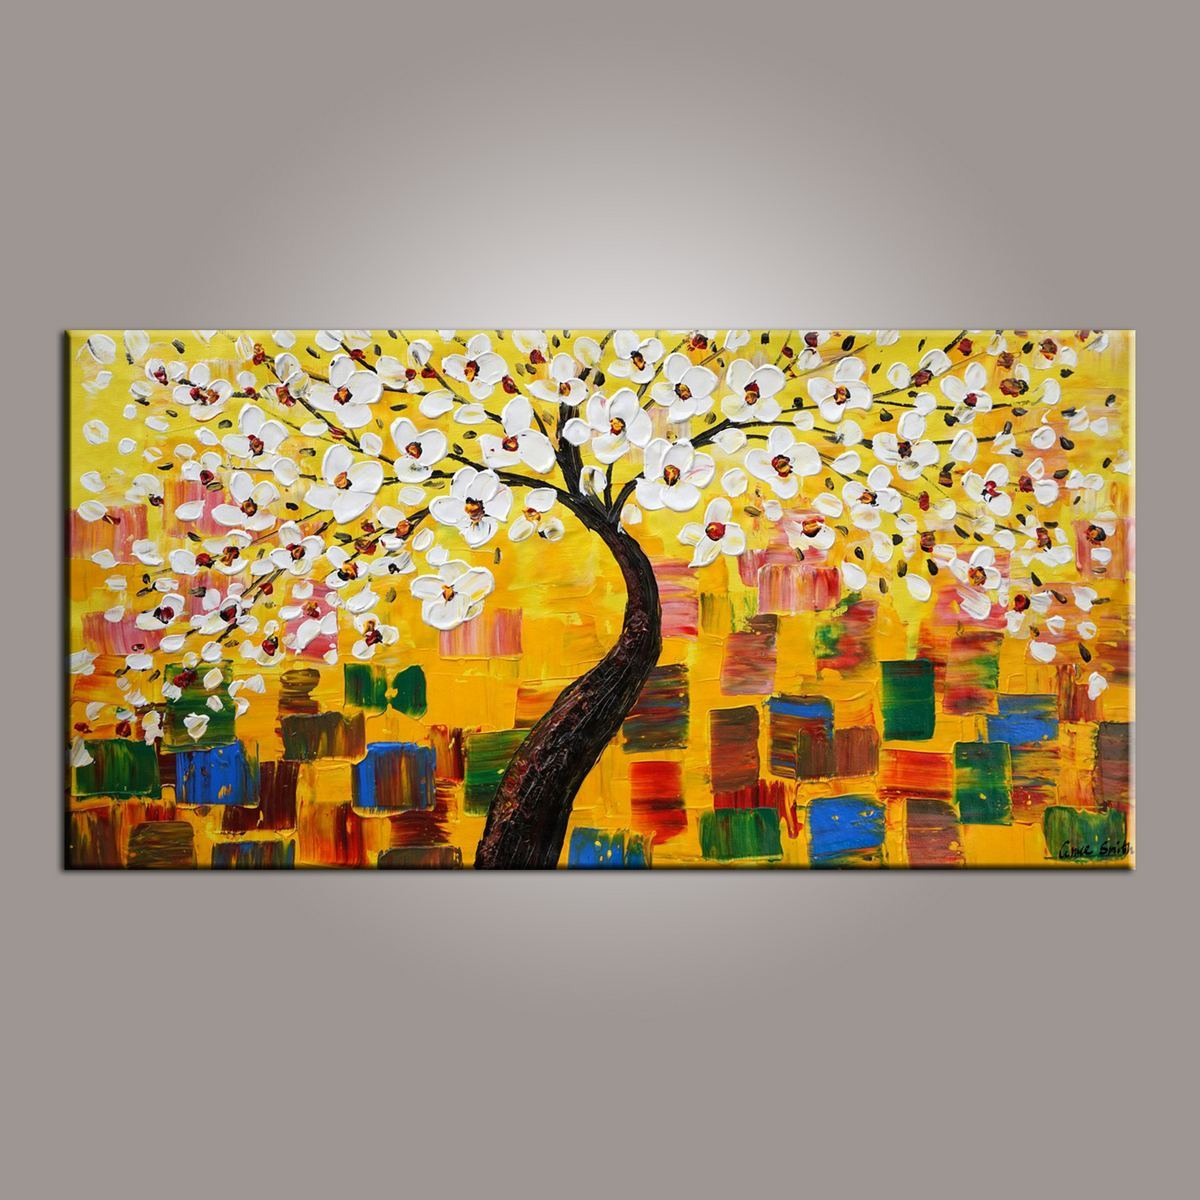 Painting on Sale, Flower Tree Painting, Abstract Art Painting, Canvas Wall Art, Dining Room Wall Art, Canvas Art, Modern Art, Contemporary Art